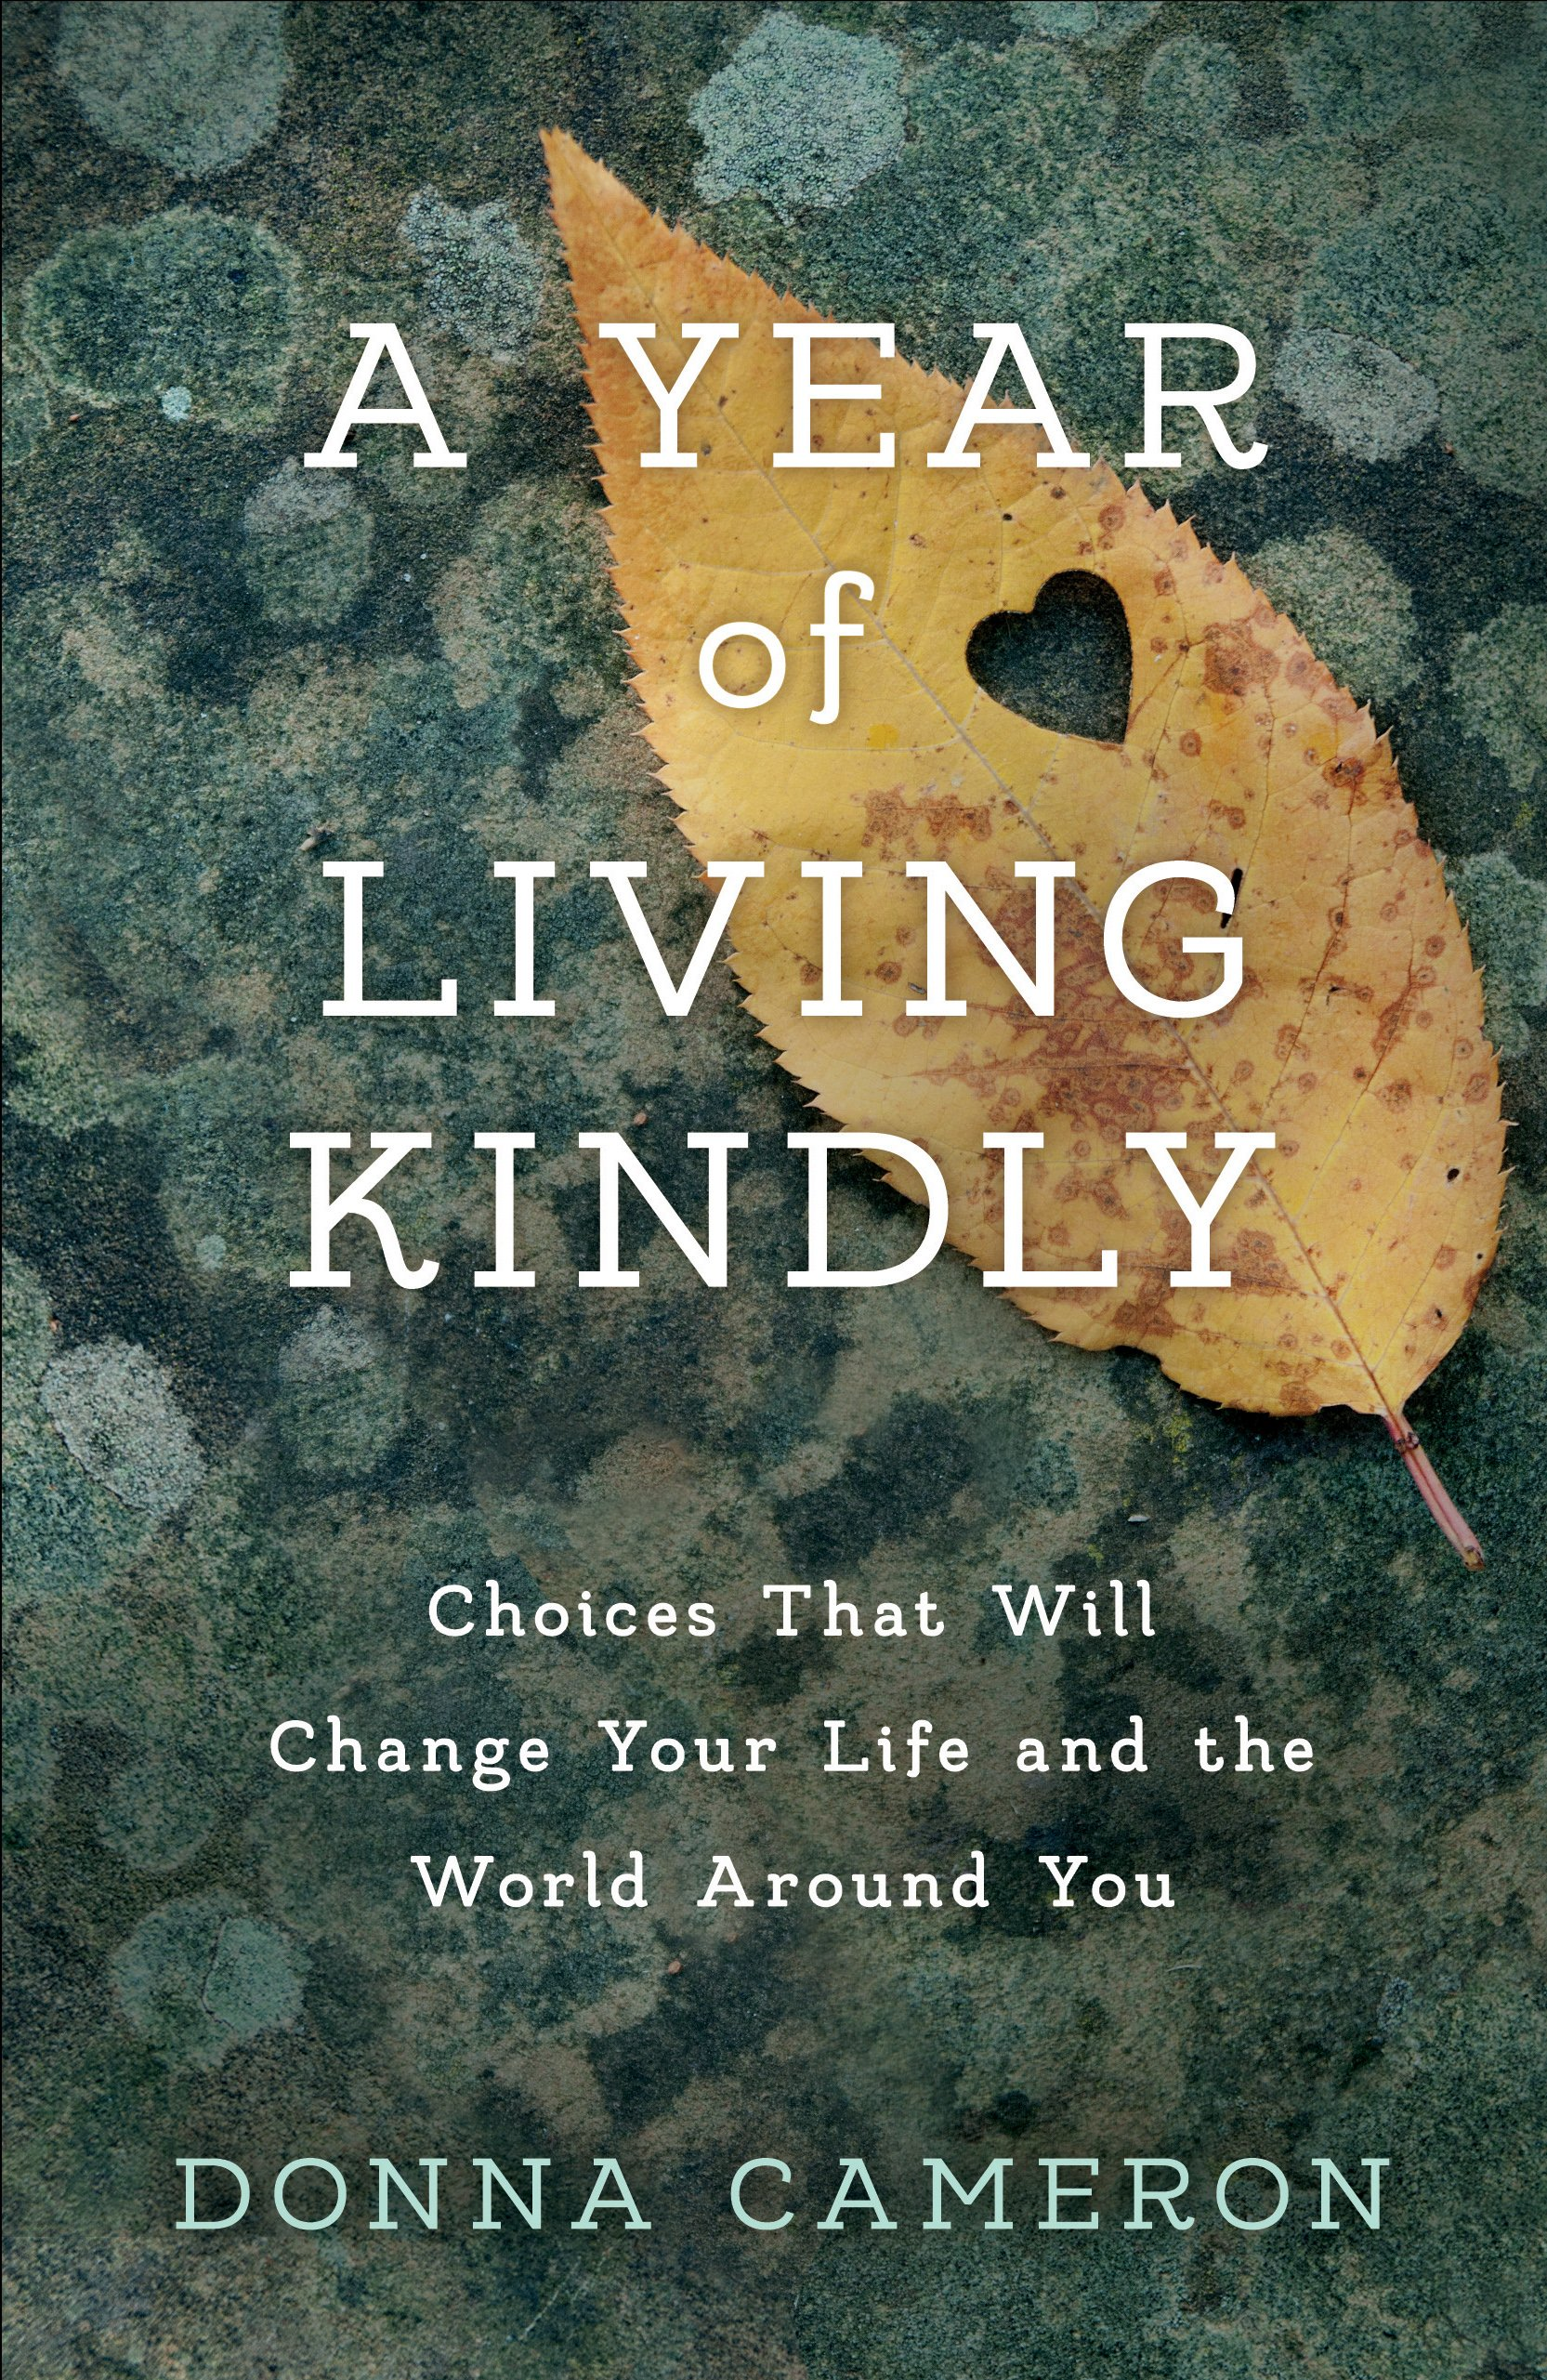 Indie Groundbreaking Book: A Year of Living Kindly